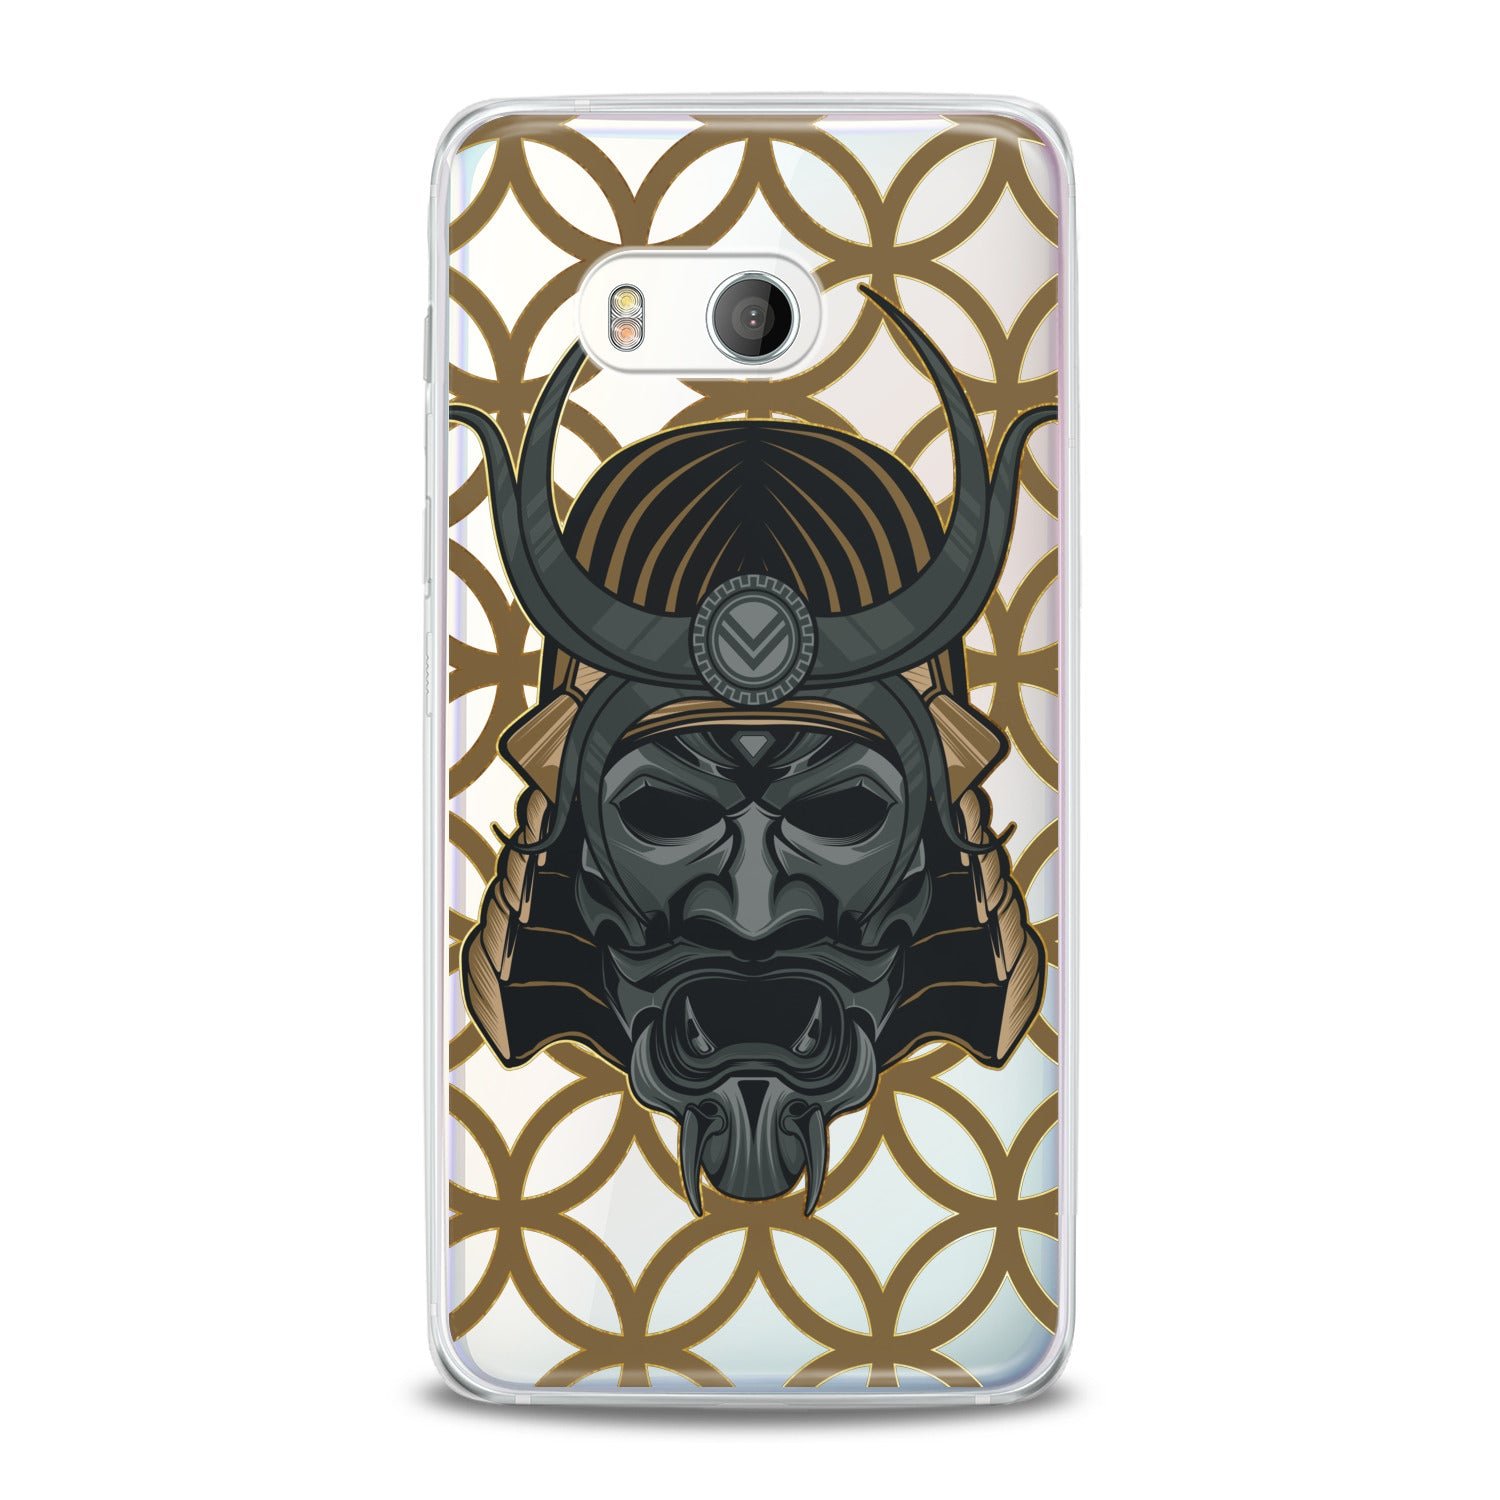 Lex Altern Japan Knight Mask HTC Case